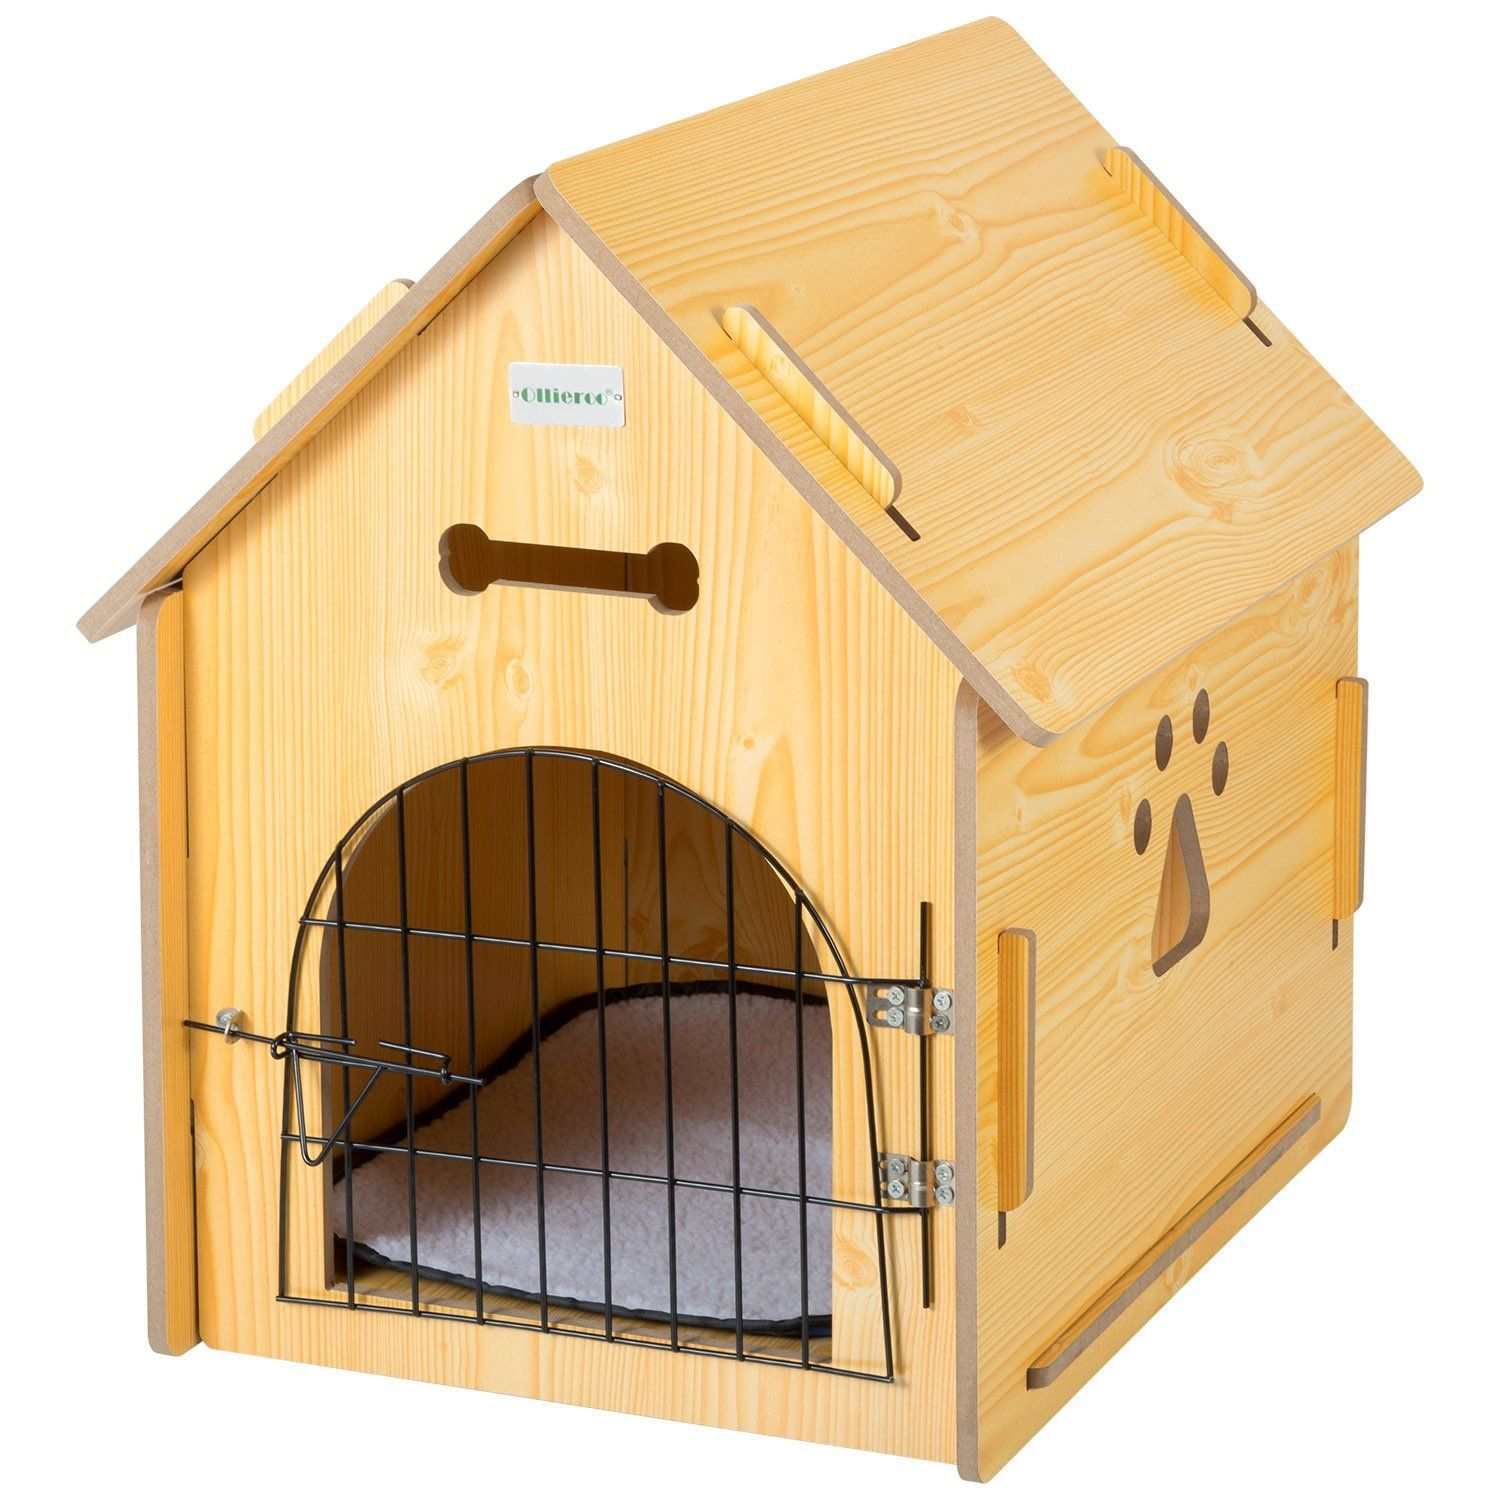 Amazon Com Ollieroo Dog House Crate Wooden Kennel Indoor Condo For Small Dogs Cats Pet Home With Door And Bed Mat Yell Dog Pet Beds Cat Crate Cool Dog Houses